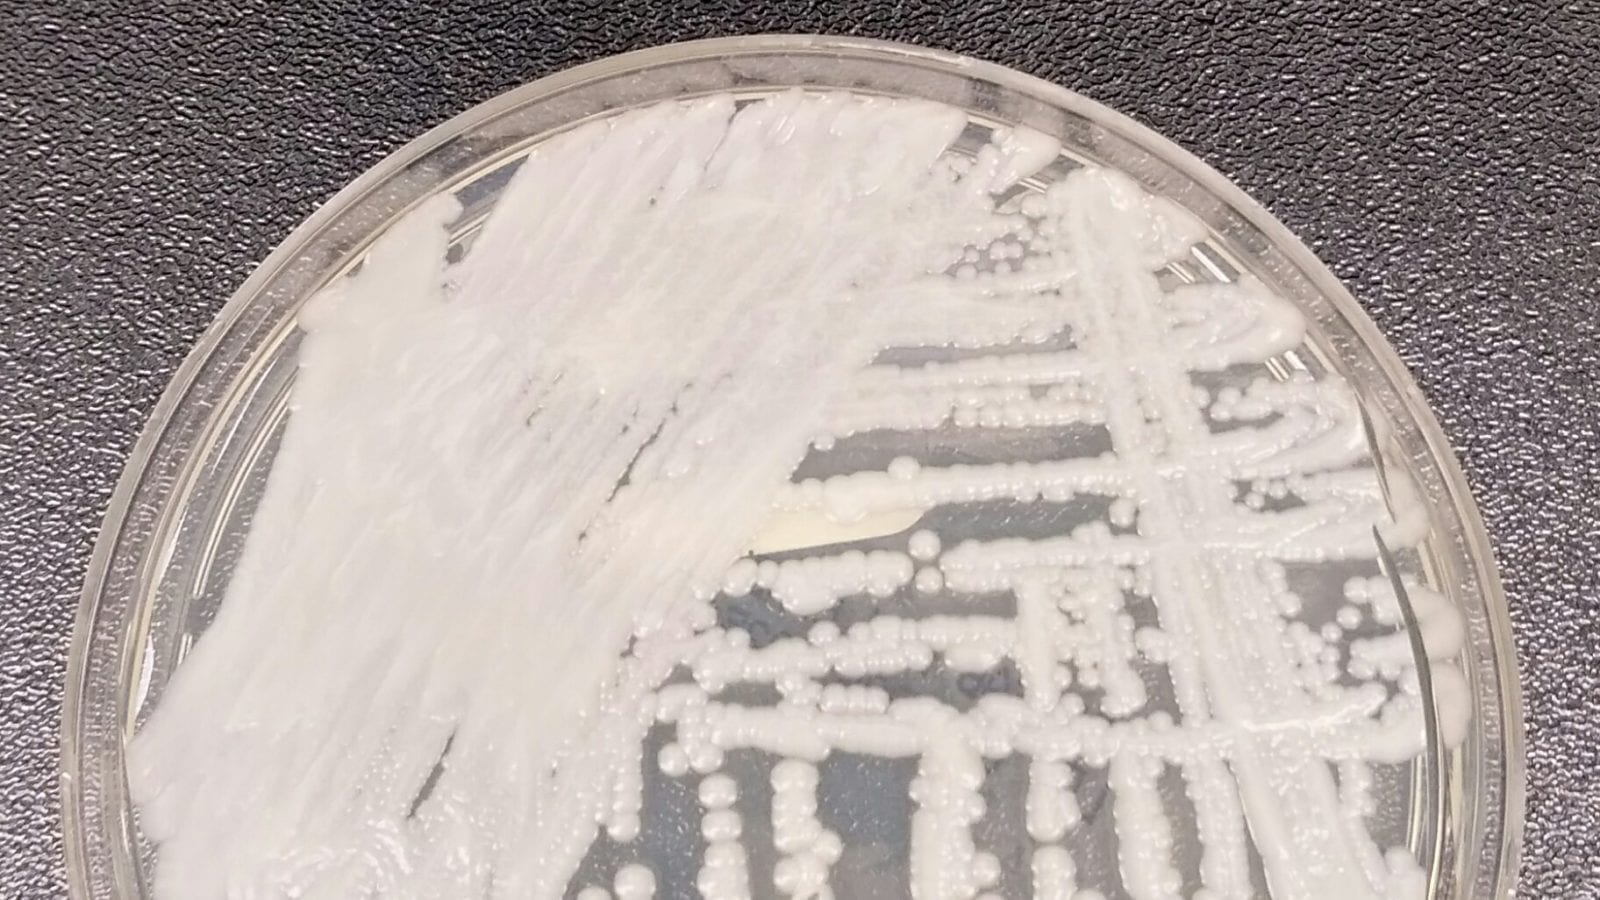 A Candida auris culture grown and kept by the CDC; image courtesy of CDC.gov, public domain.